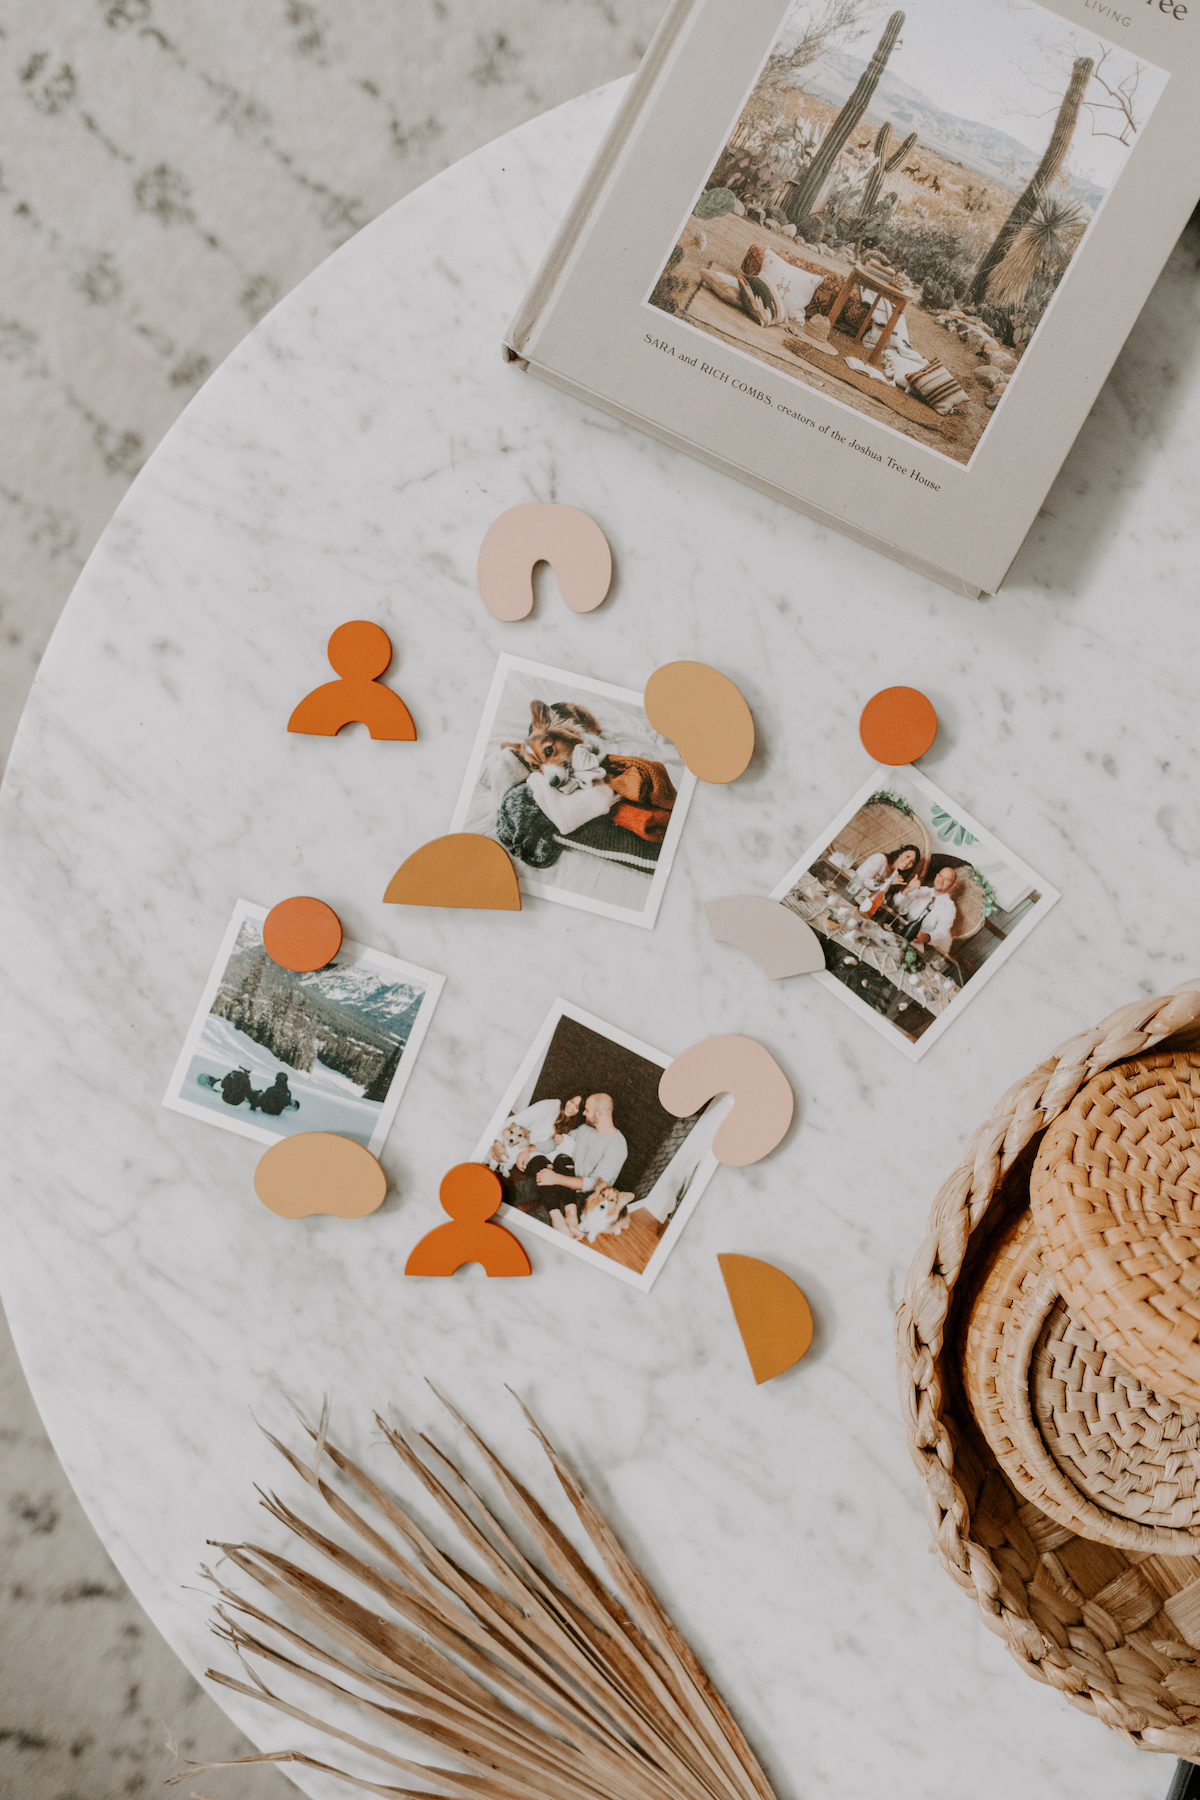 Assortment of photos on a marble table